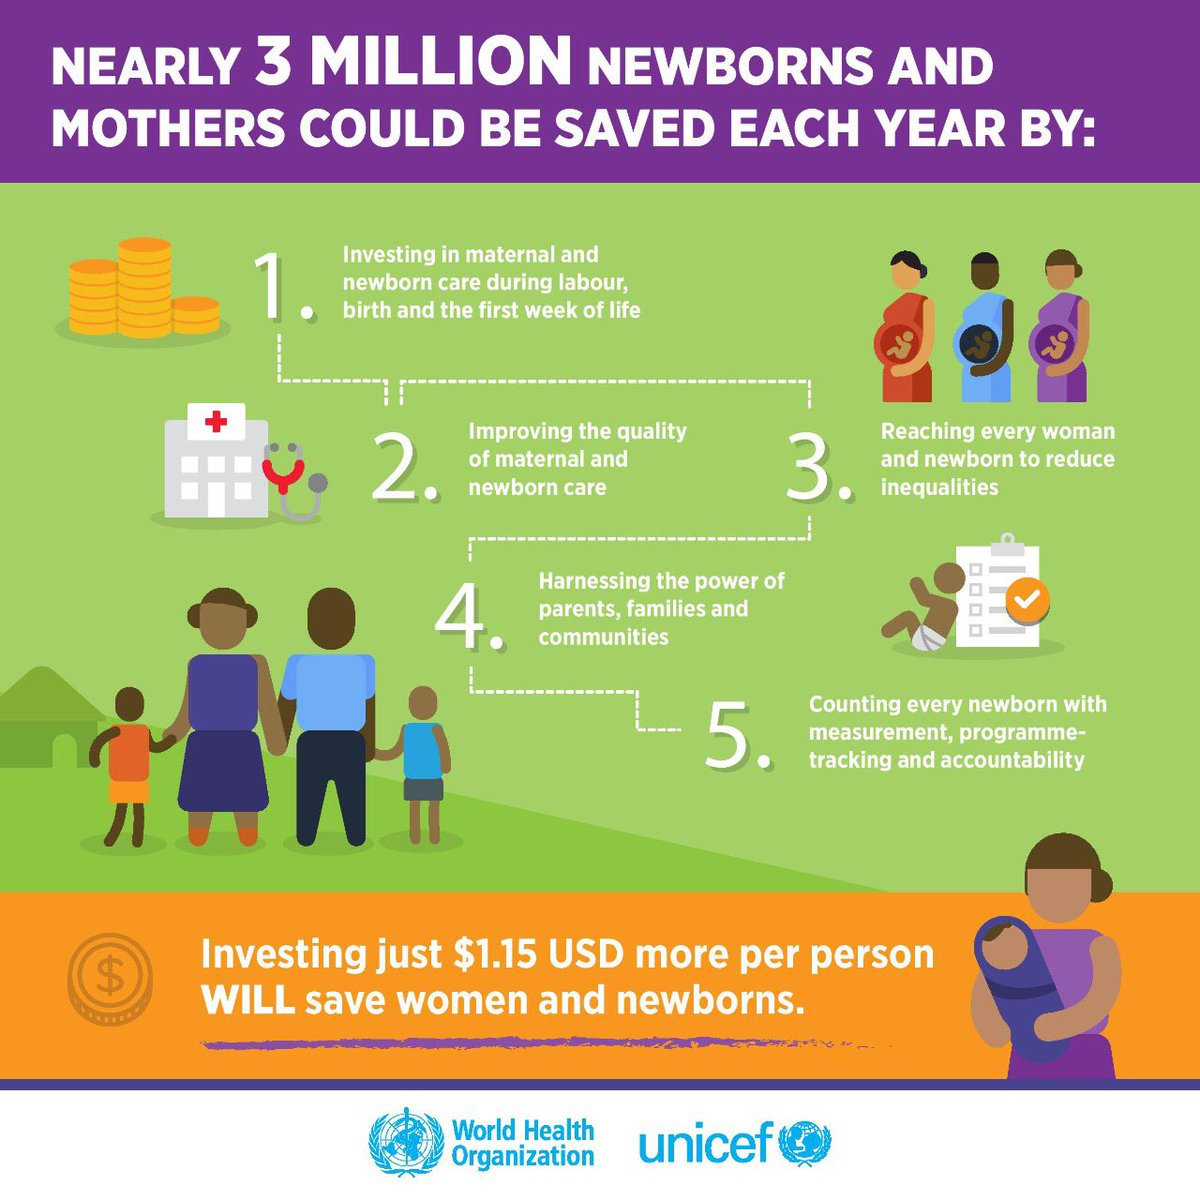 That's how we can save nearly 3 million new borns and mothers each year ! #maternalhealth #maternalwellness #newborn #improvehealthcare #powerofcommunity #qualitymaternalcareandeducation #reduceinequality #grfcare #thereforcare @WHO @UNICEF